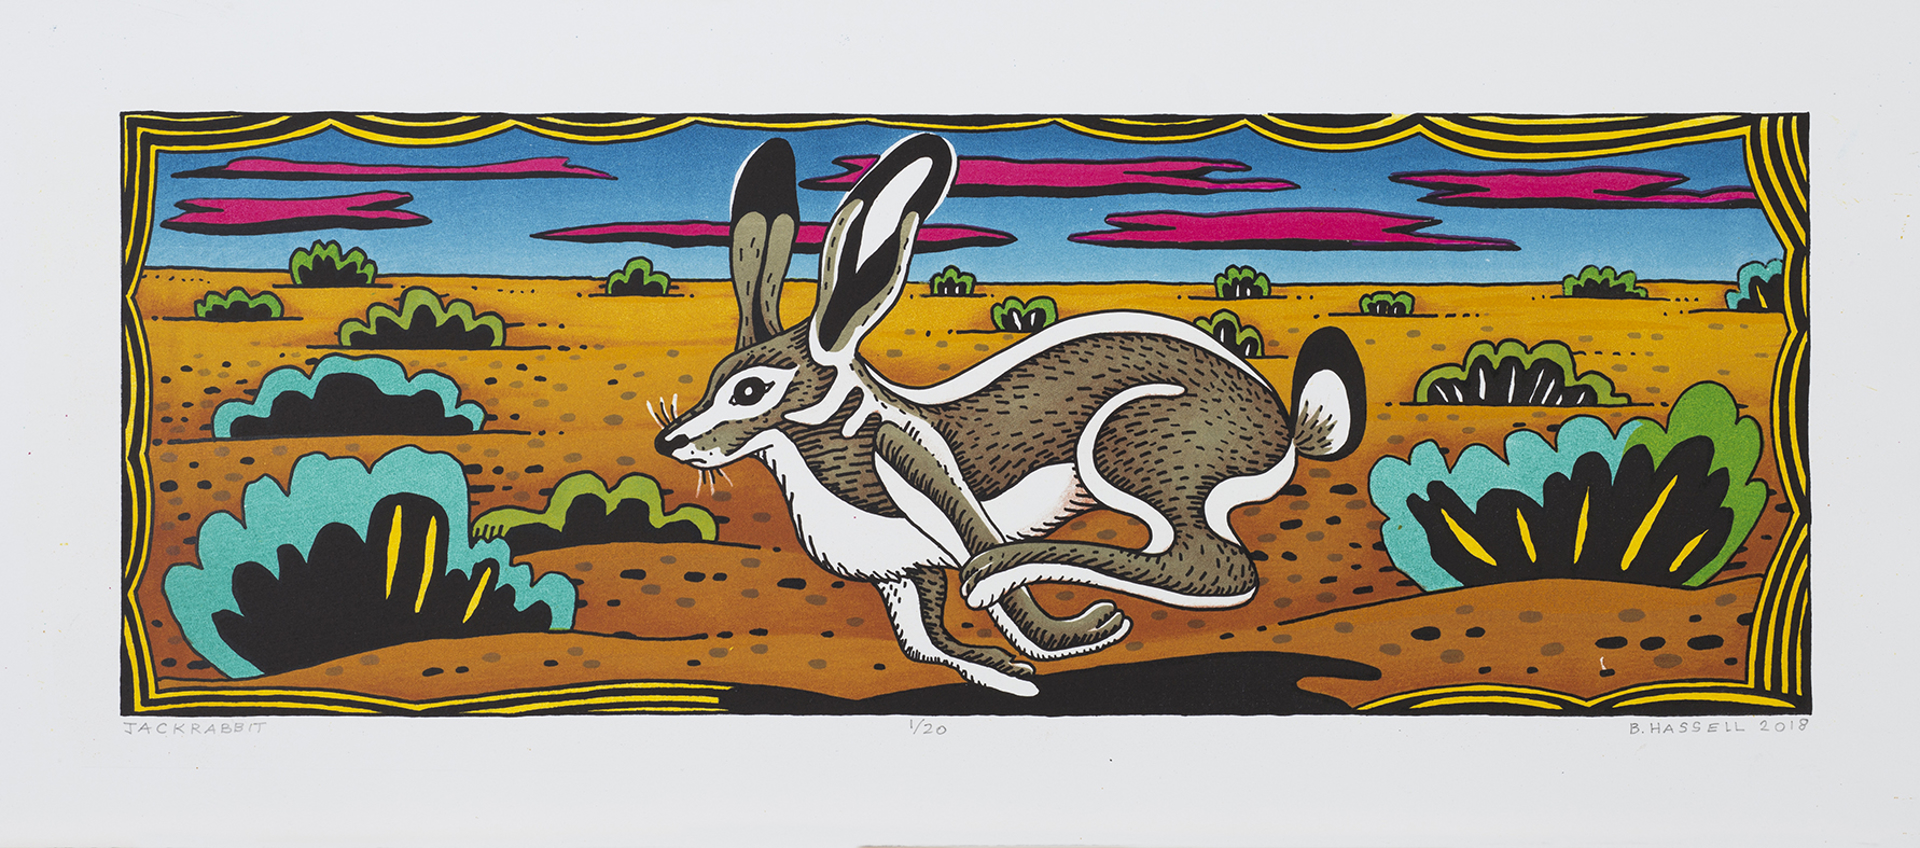 Jackrabbit by Billy Hassell